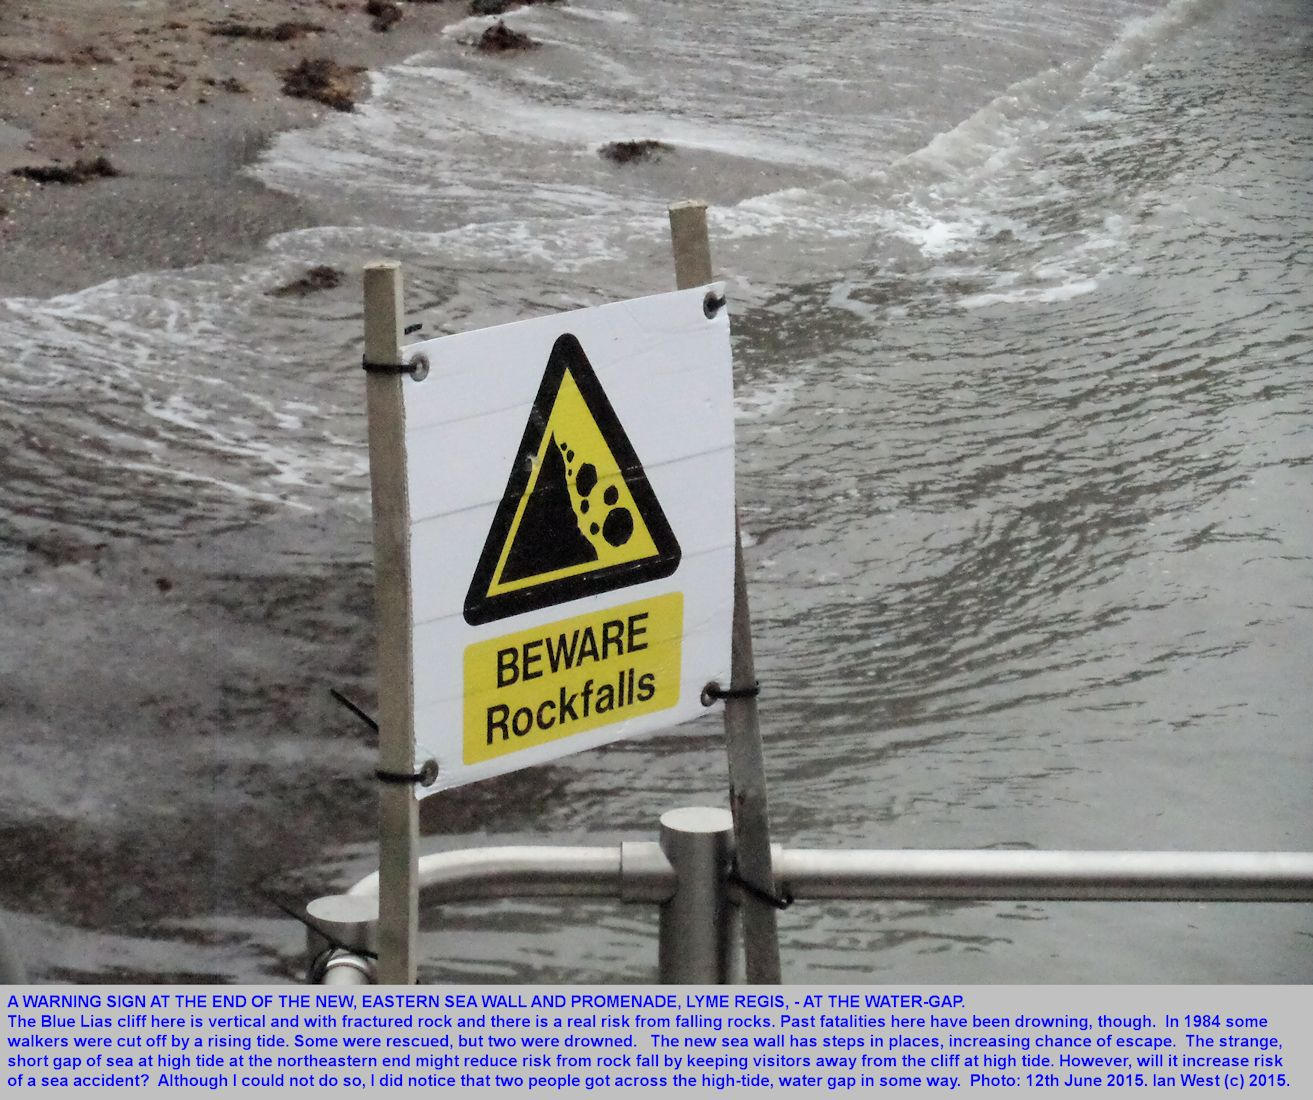 A warning sign about rock-fall near the vertical East Cliff of Blue Lias at the end of the new eastern sea wall and promenade, Lyme Regis, Dorset